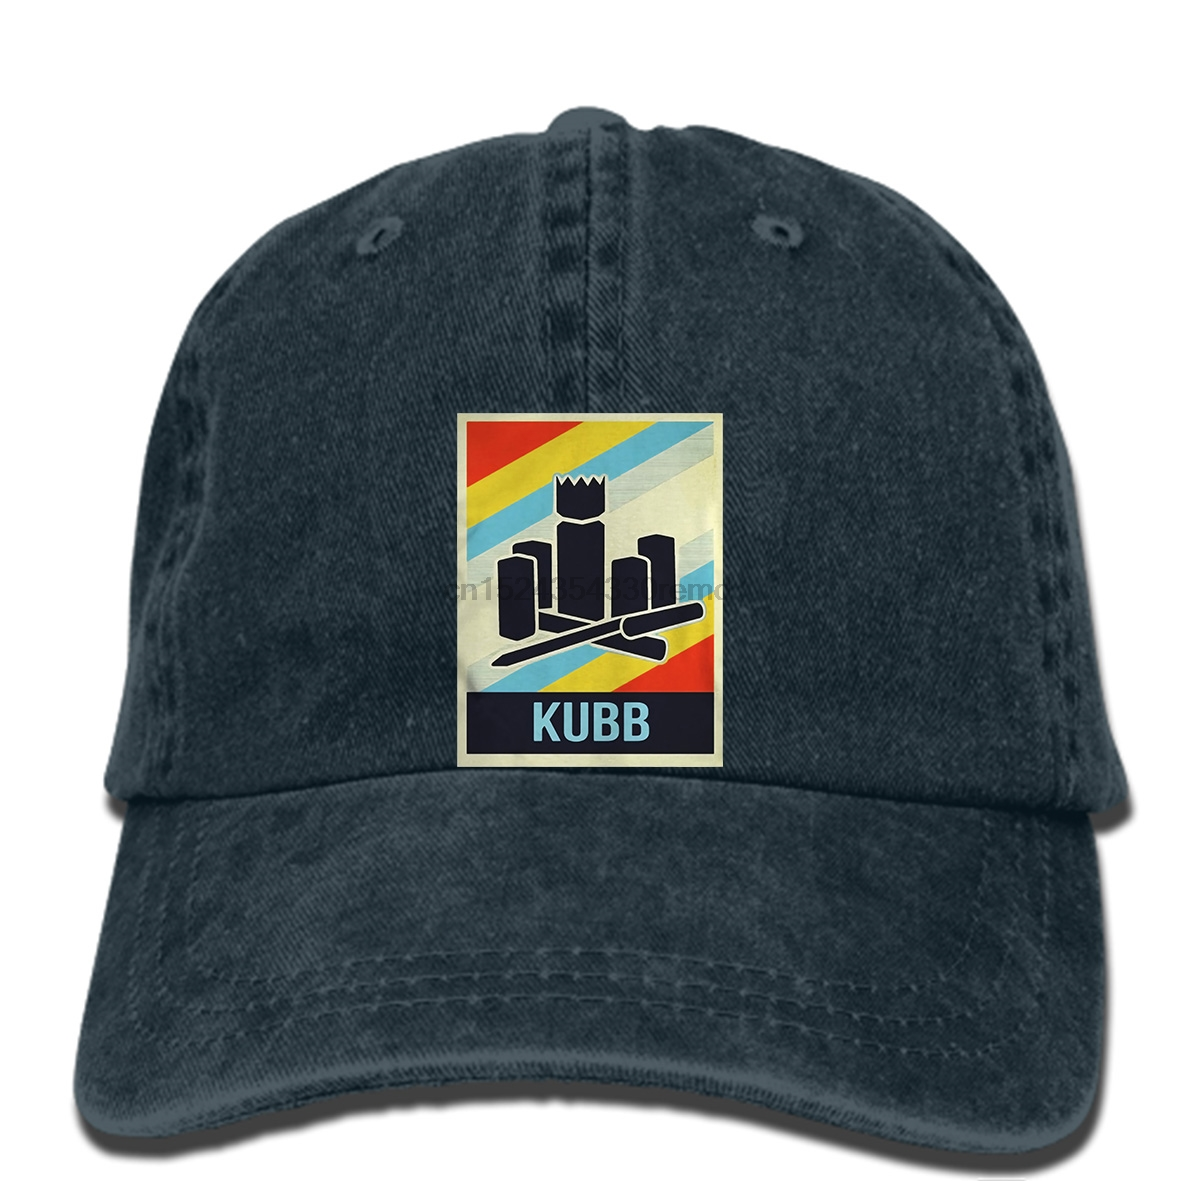 Buy awesome cap and get free shipping on AliExpress.com 8acda64f4a2c